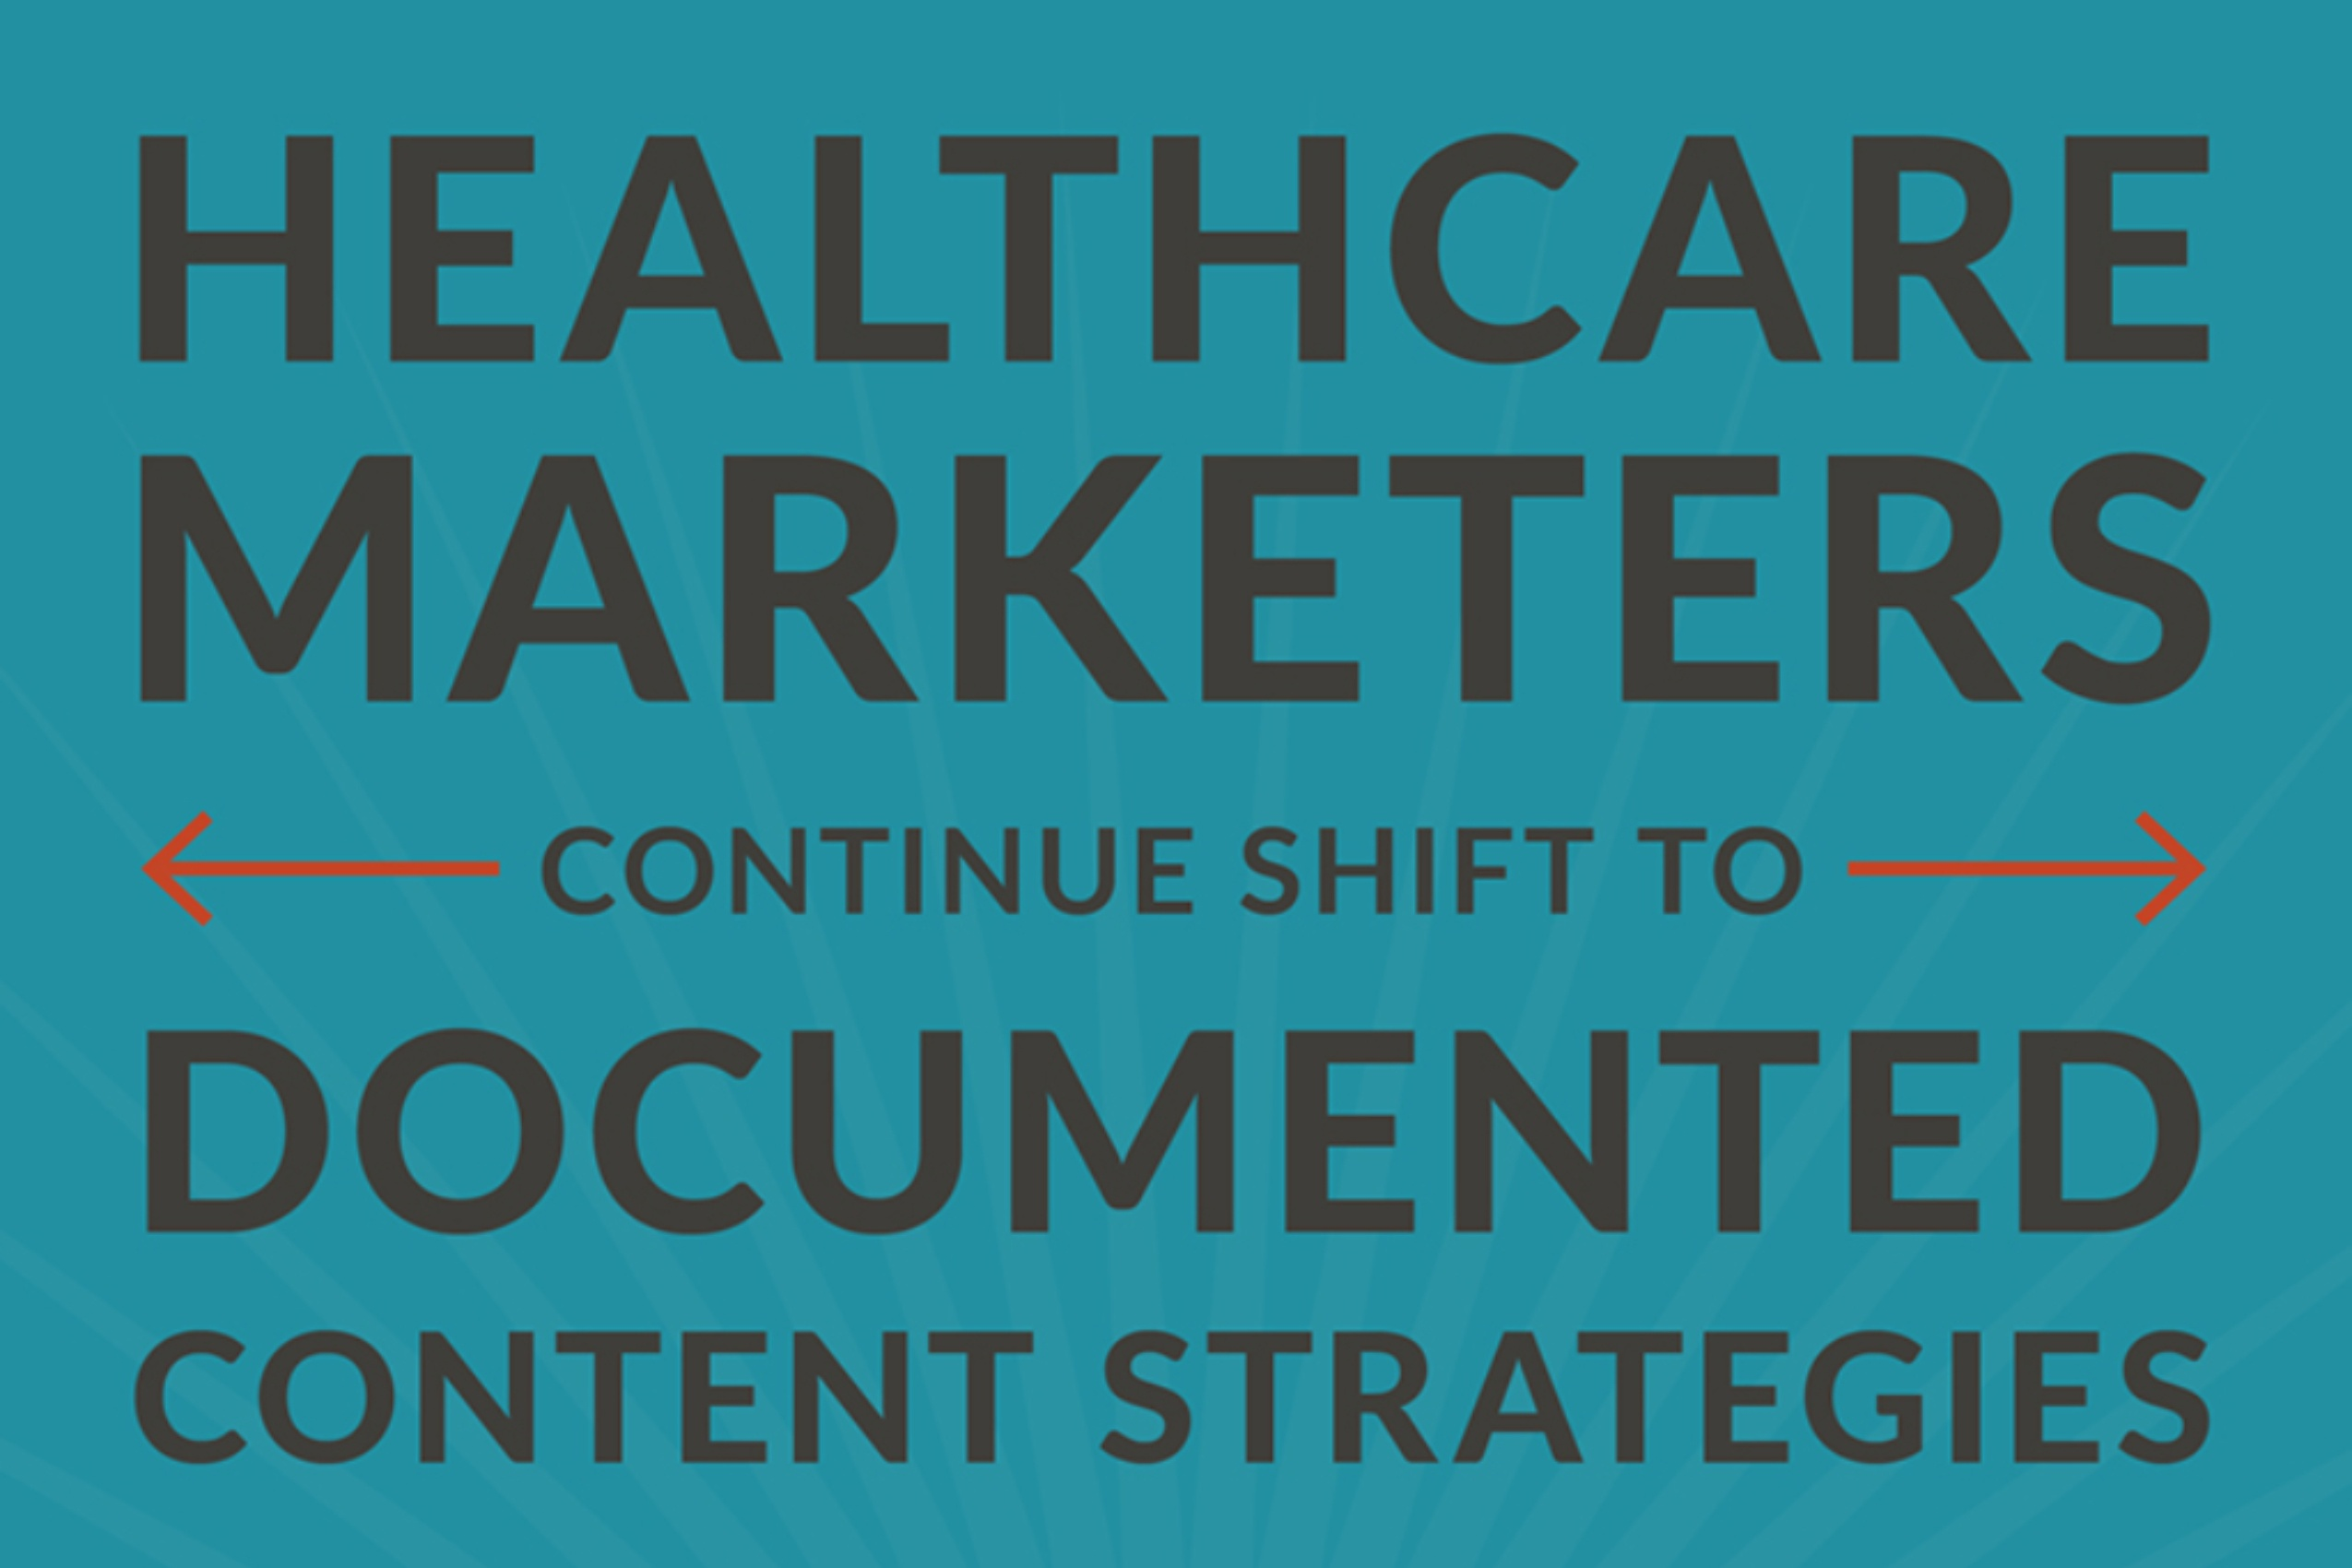 Healthcare Marketers Continue Shift To Documented Content Strategies (infographic) (1)